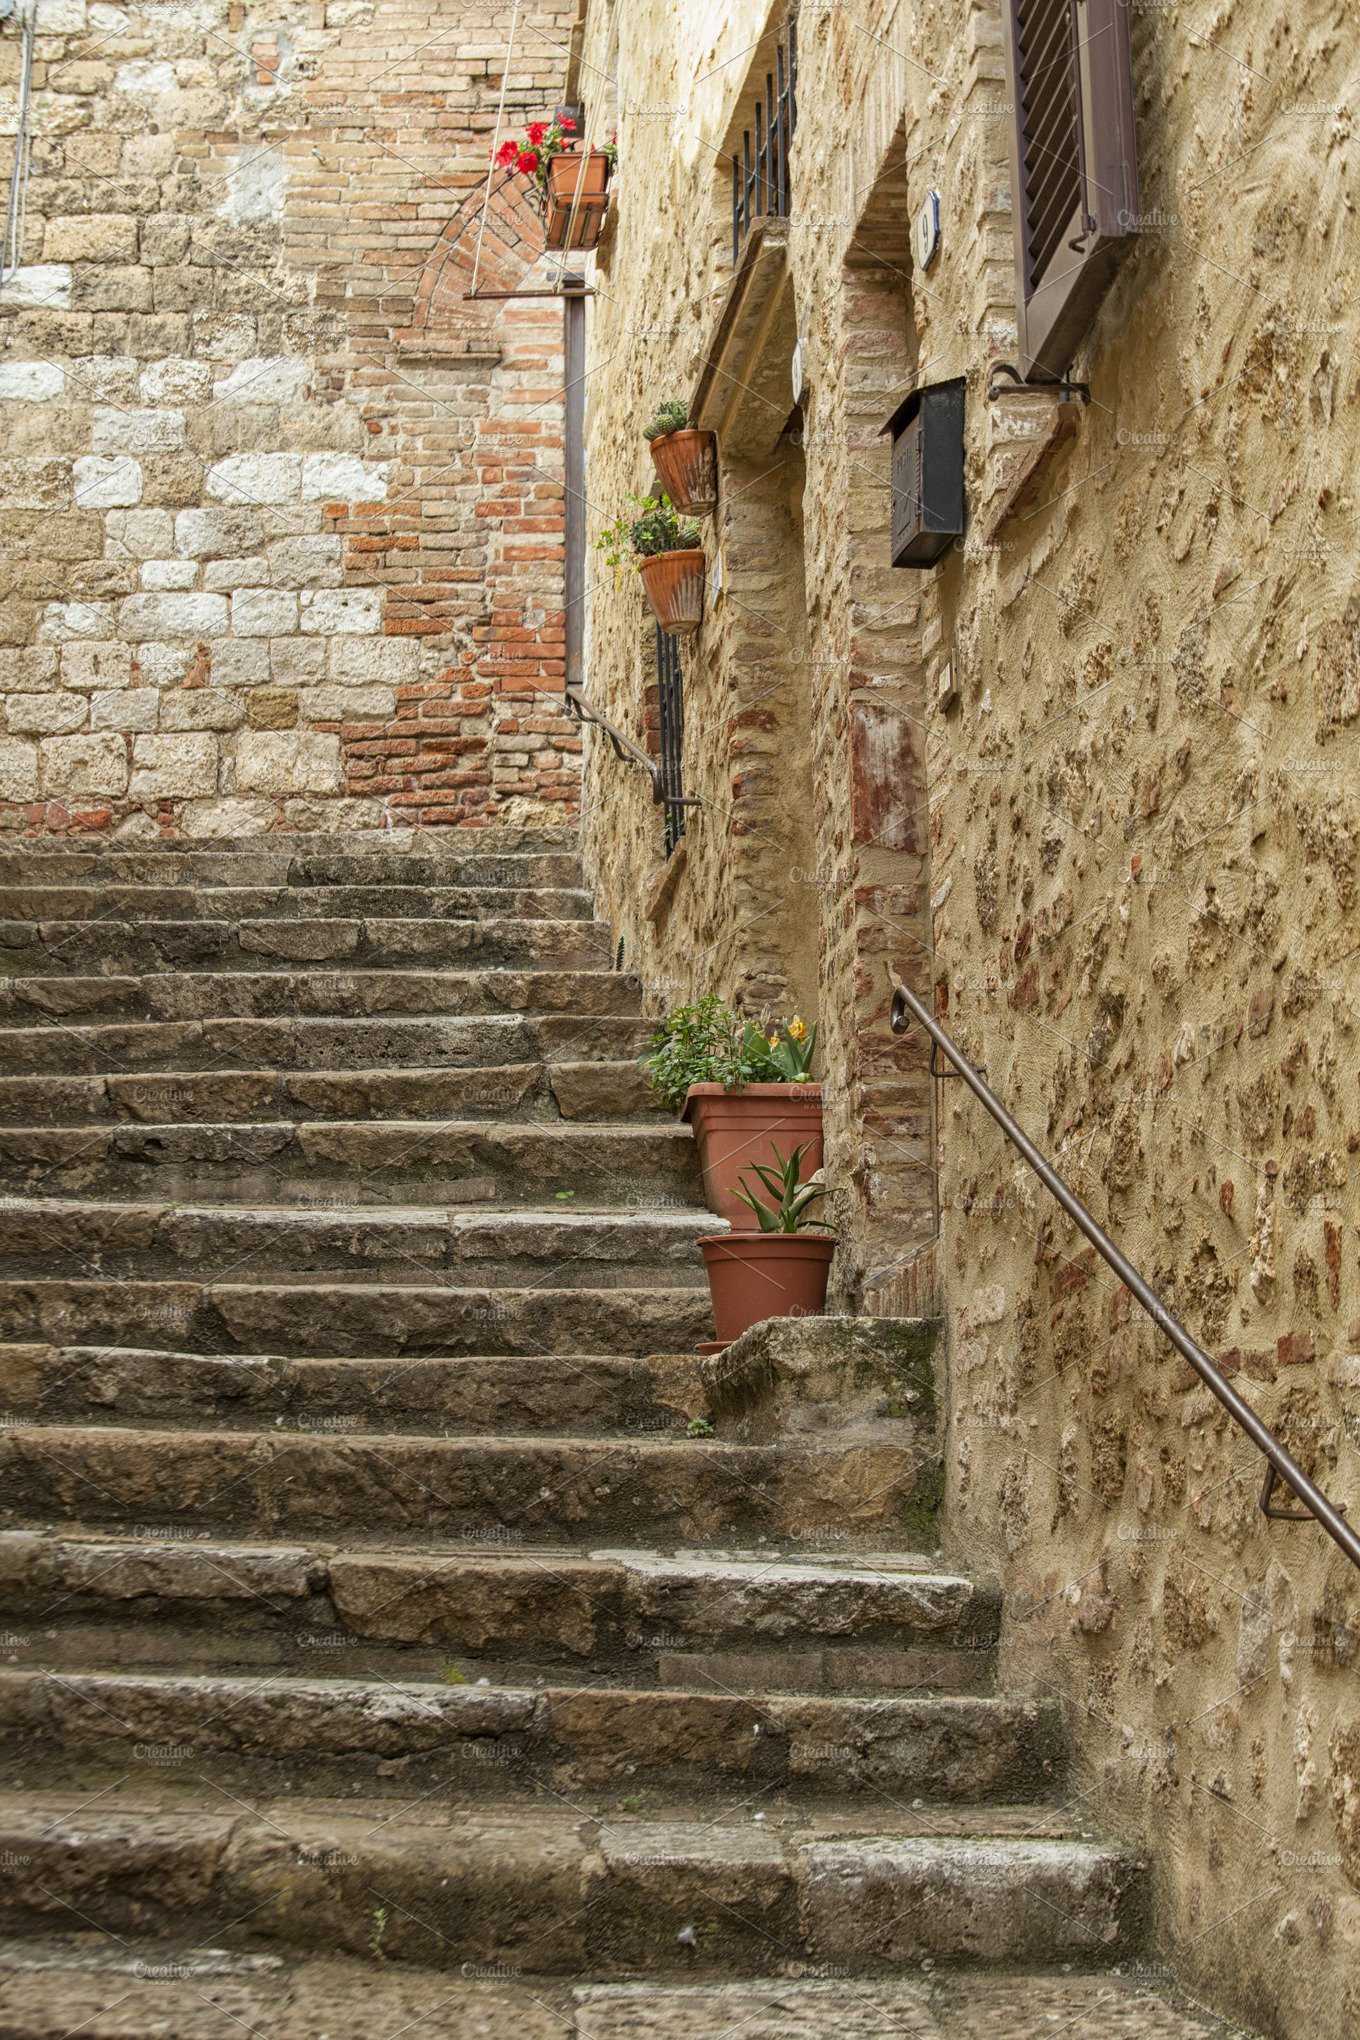 Old Stone Stairs In Italy Architecture Photos Creative Market